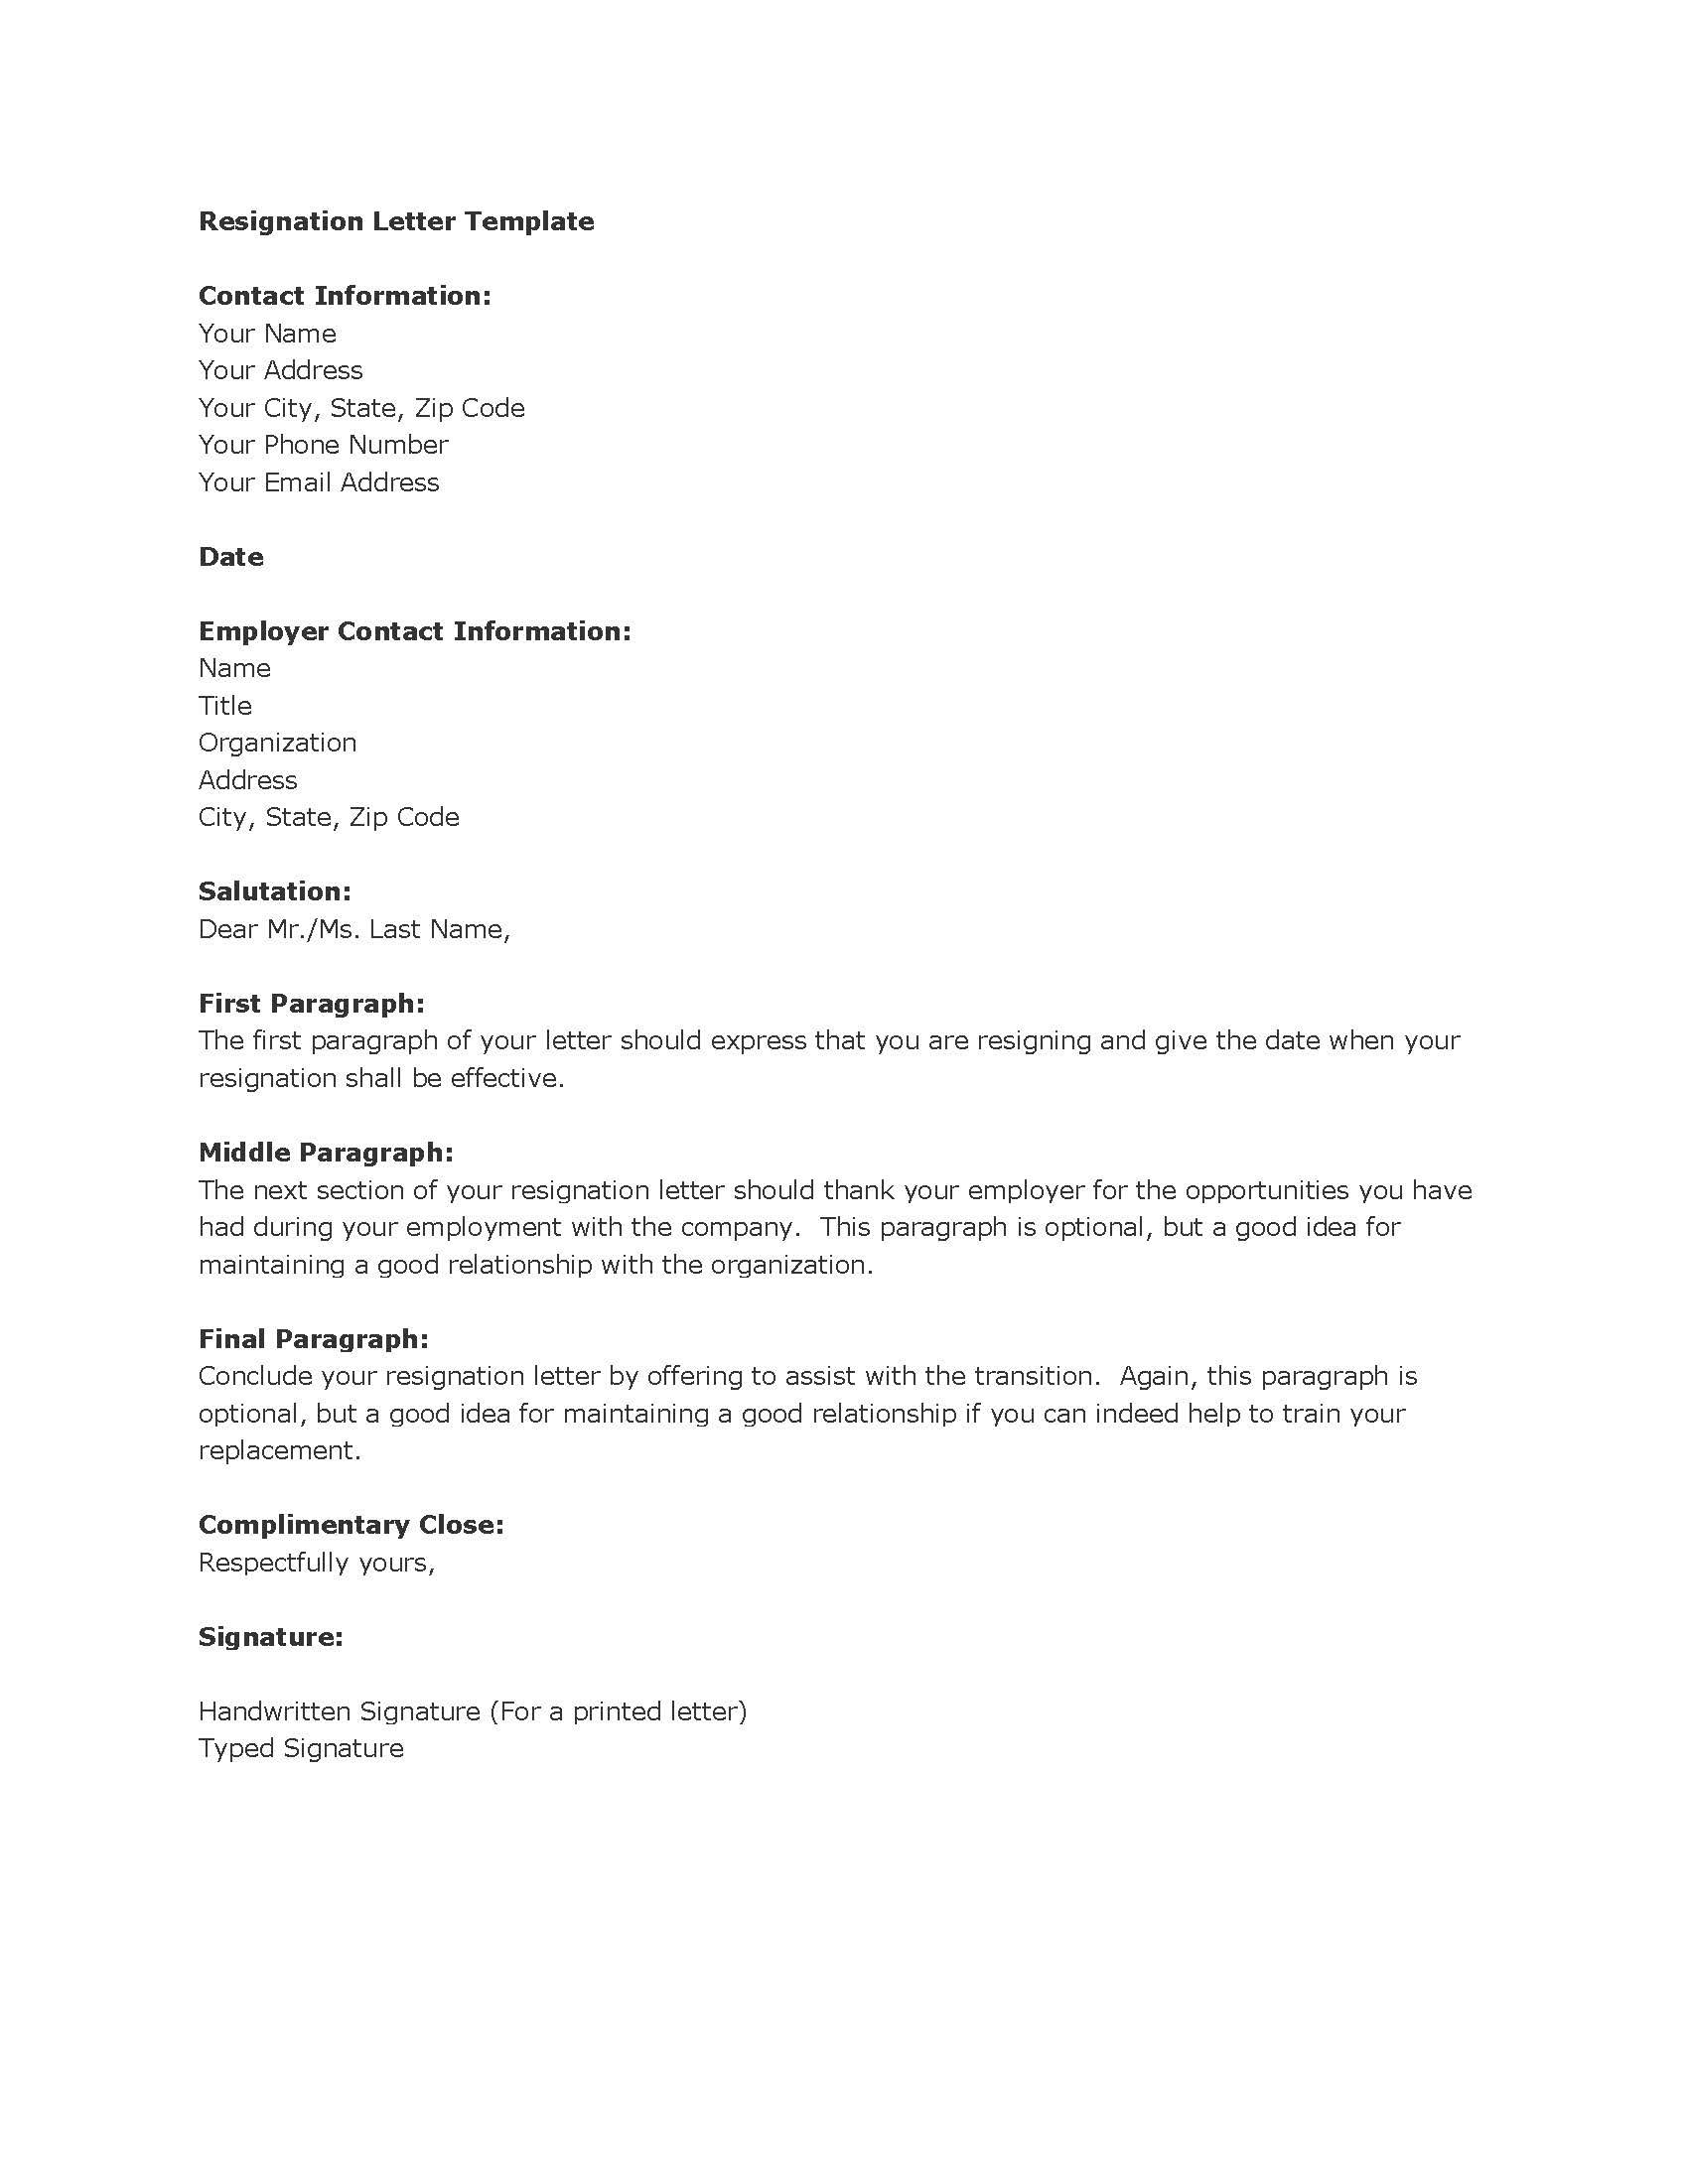 Job resignation letter sample template seeabruzzoresignation letter job resignation letter sample template seeabruzzoresignation letter job letter sample expocarfo